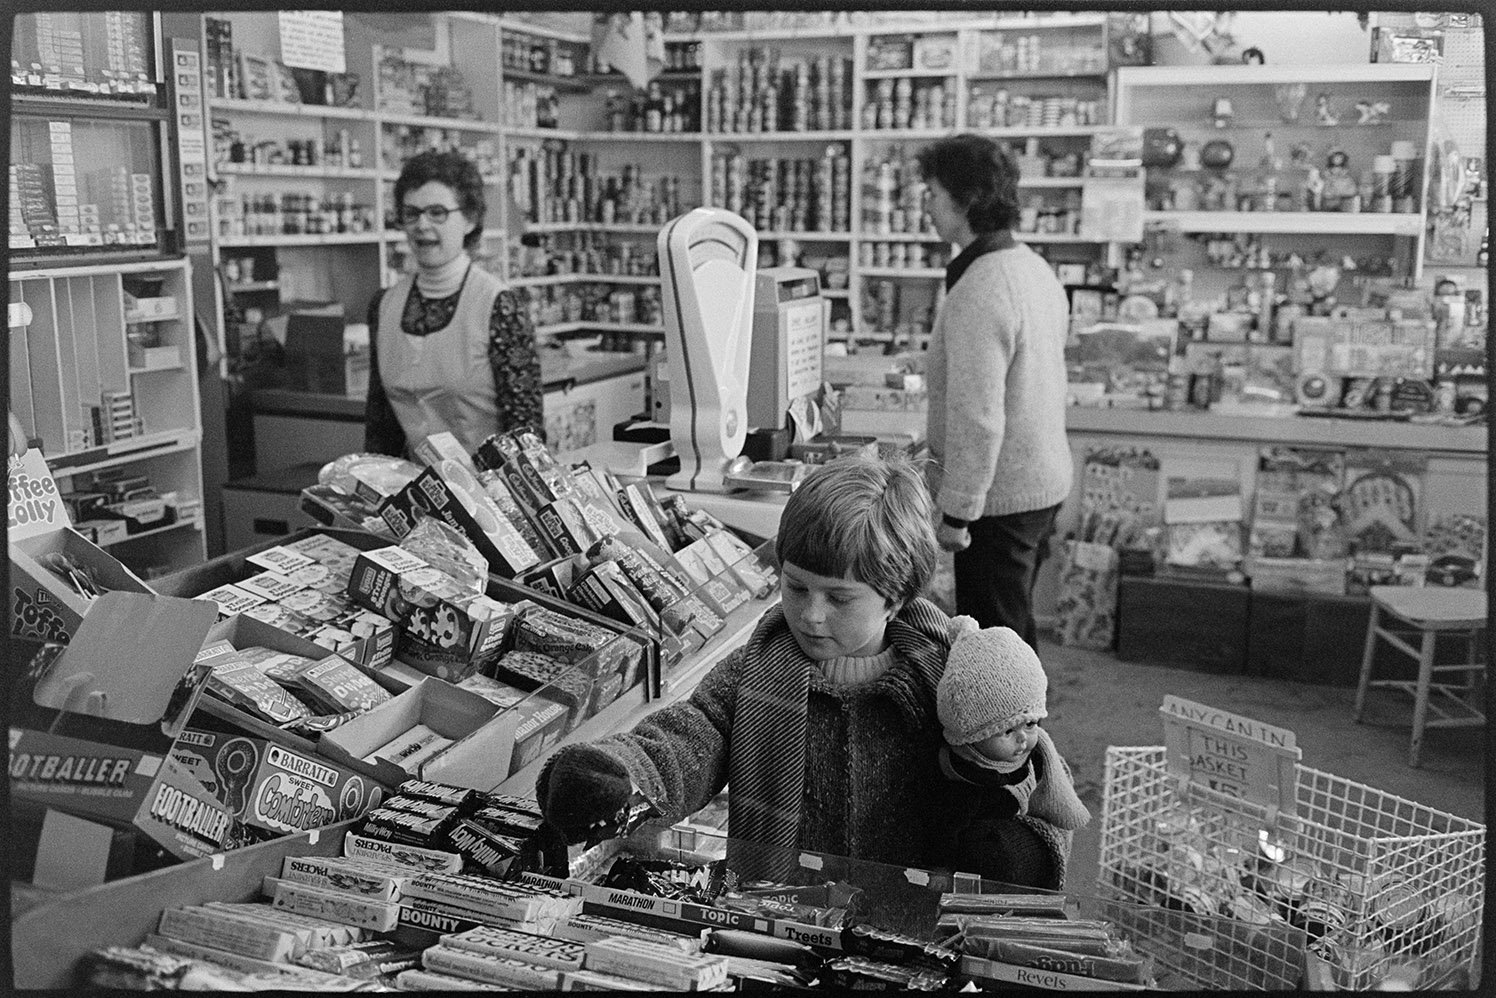 Interior of village grocery store with customers, child buying sweets. Documentary photograph by James Ravilious for the Beaford Archive, Beaford Arts